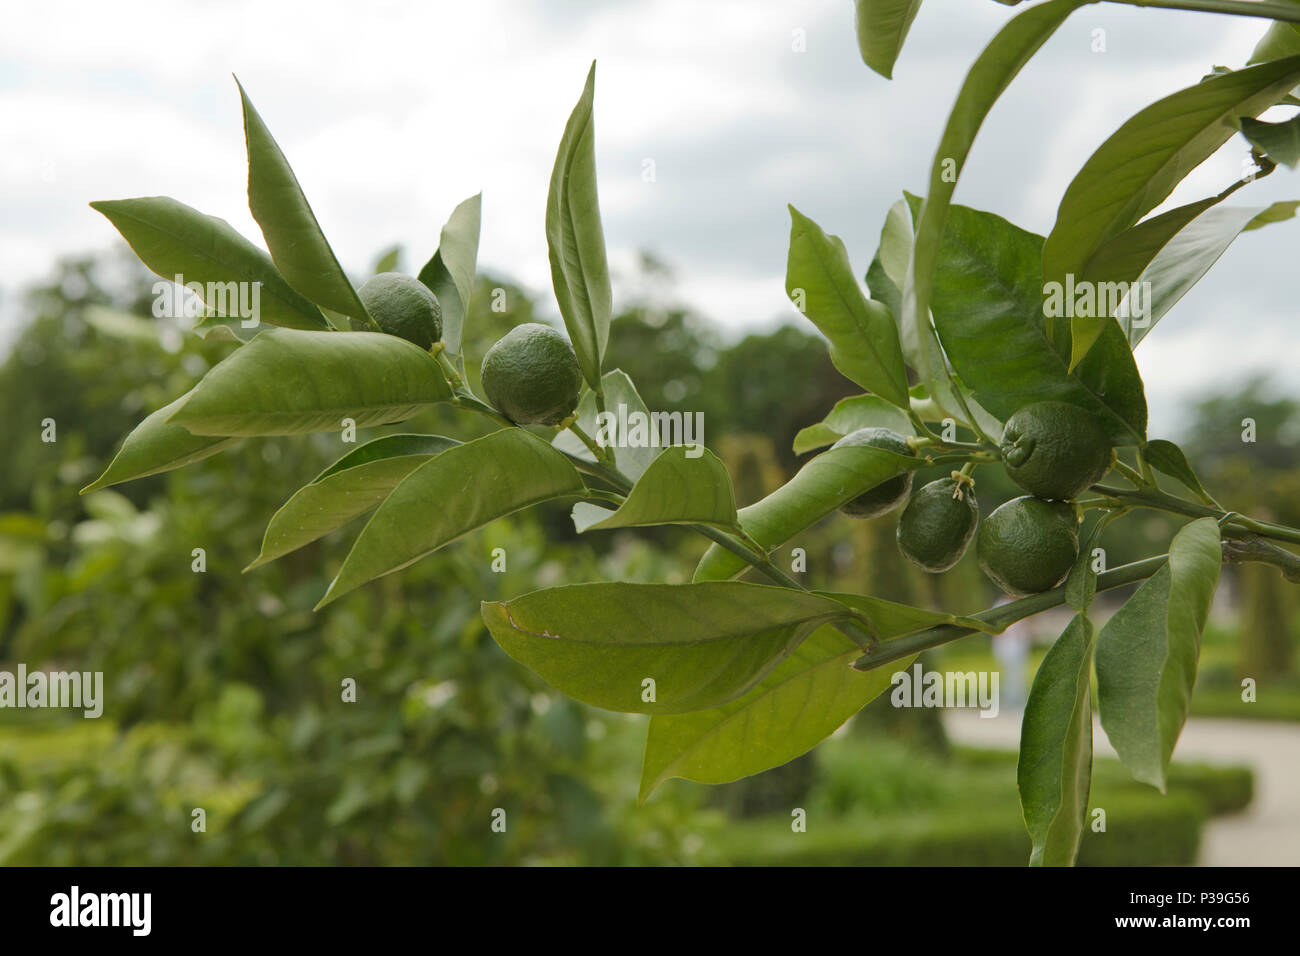 group of green oranges on a twig - Stock Image